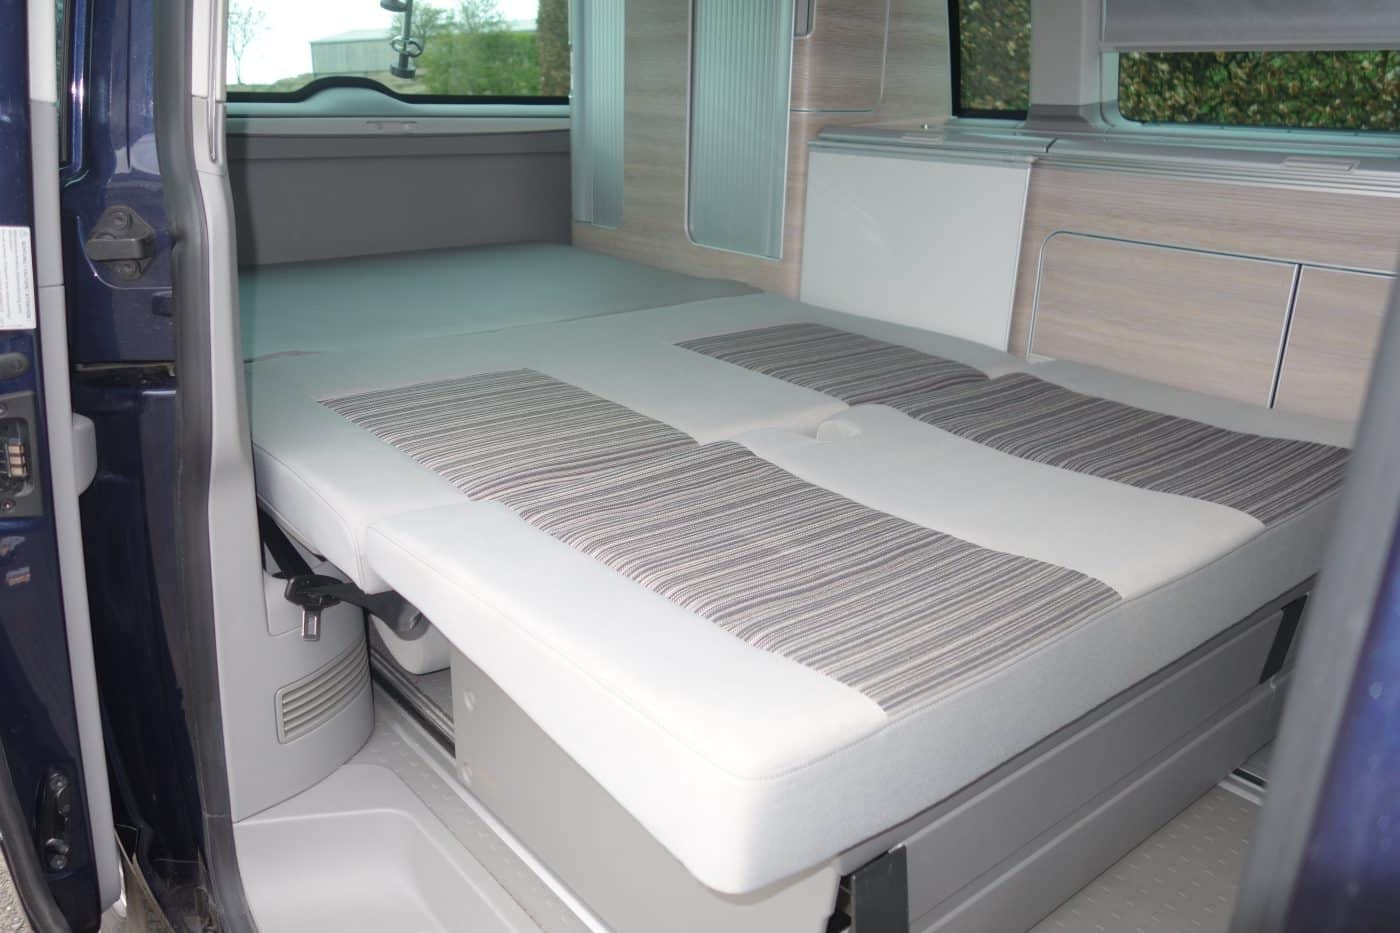 VW camper van bed